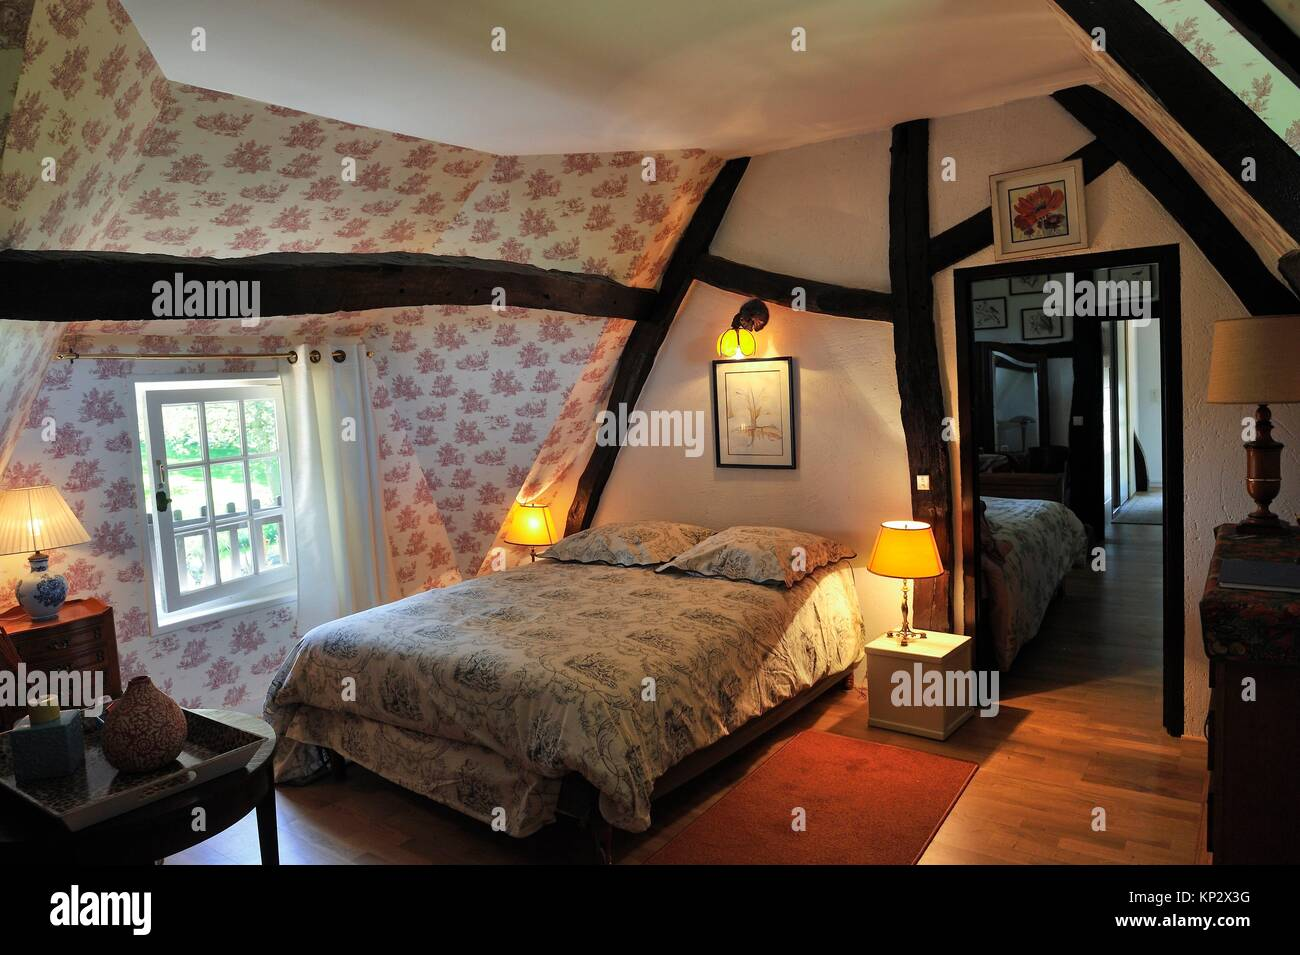 Chambres Fotos & Chambres Imagens de Stock - Alamy on